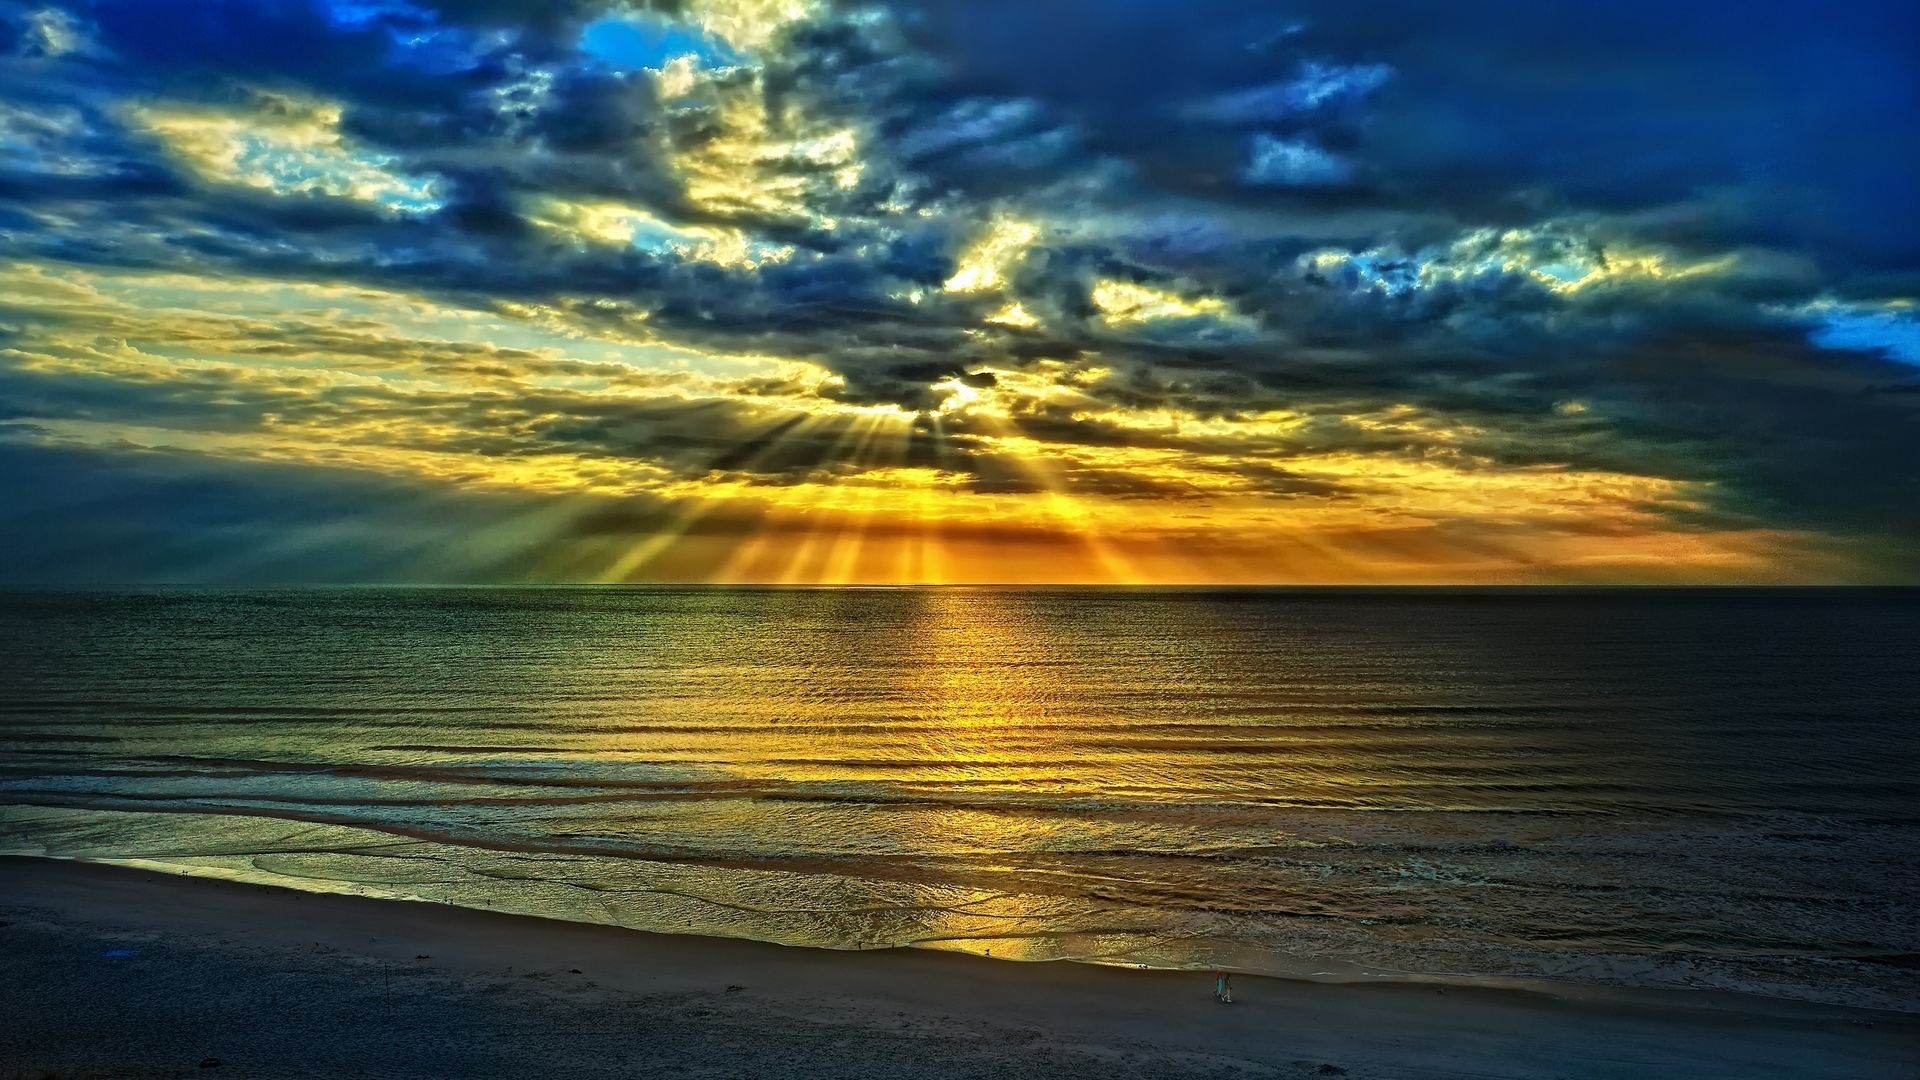 Sunset with Rays